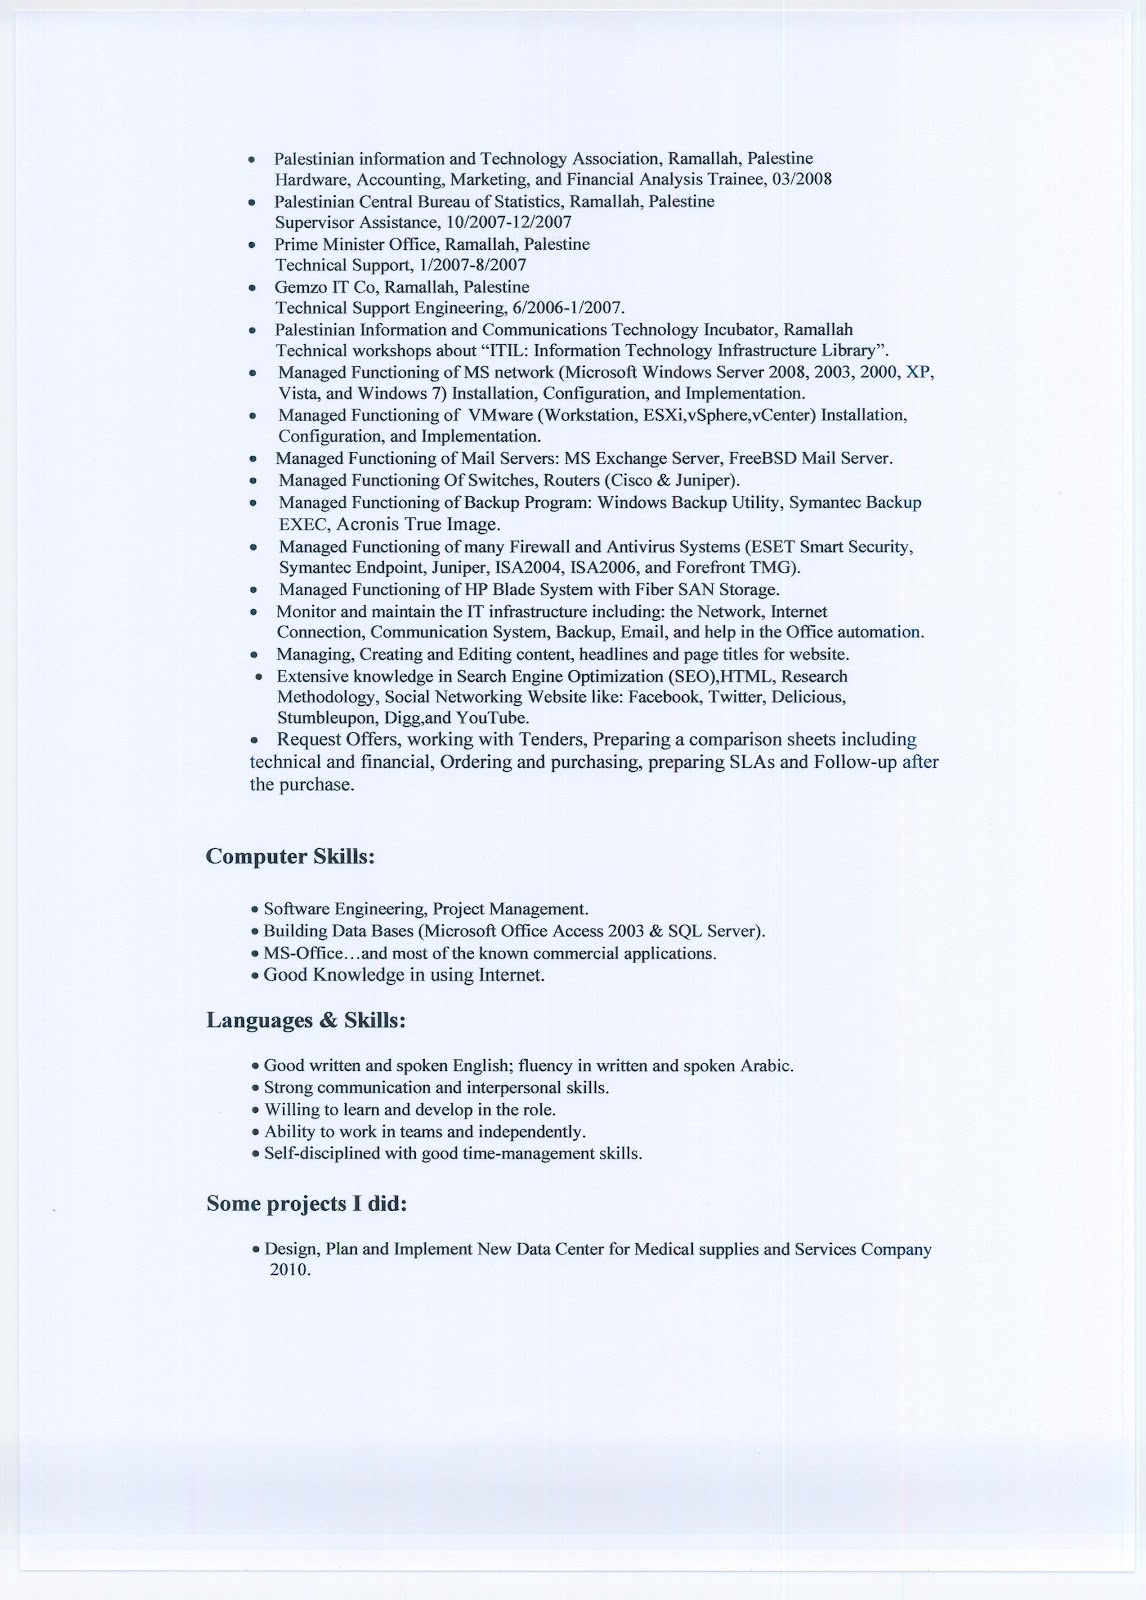 how to write a cv cv example how to write a cv cv example cv template